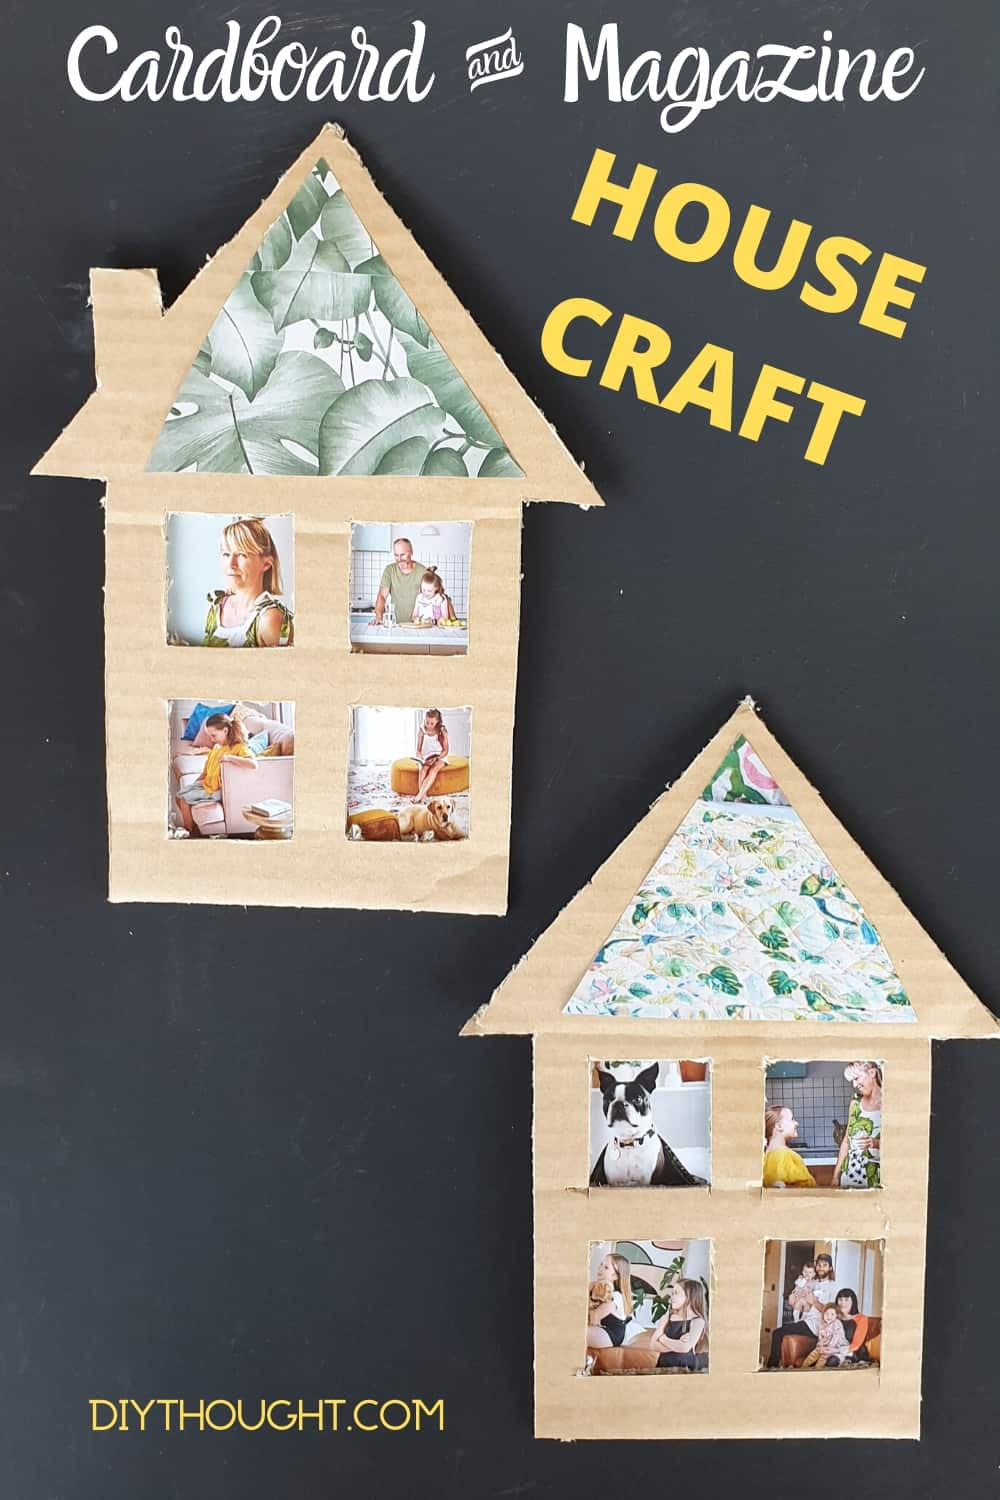 Cardboard box and magazine house craft